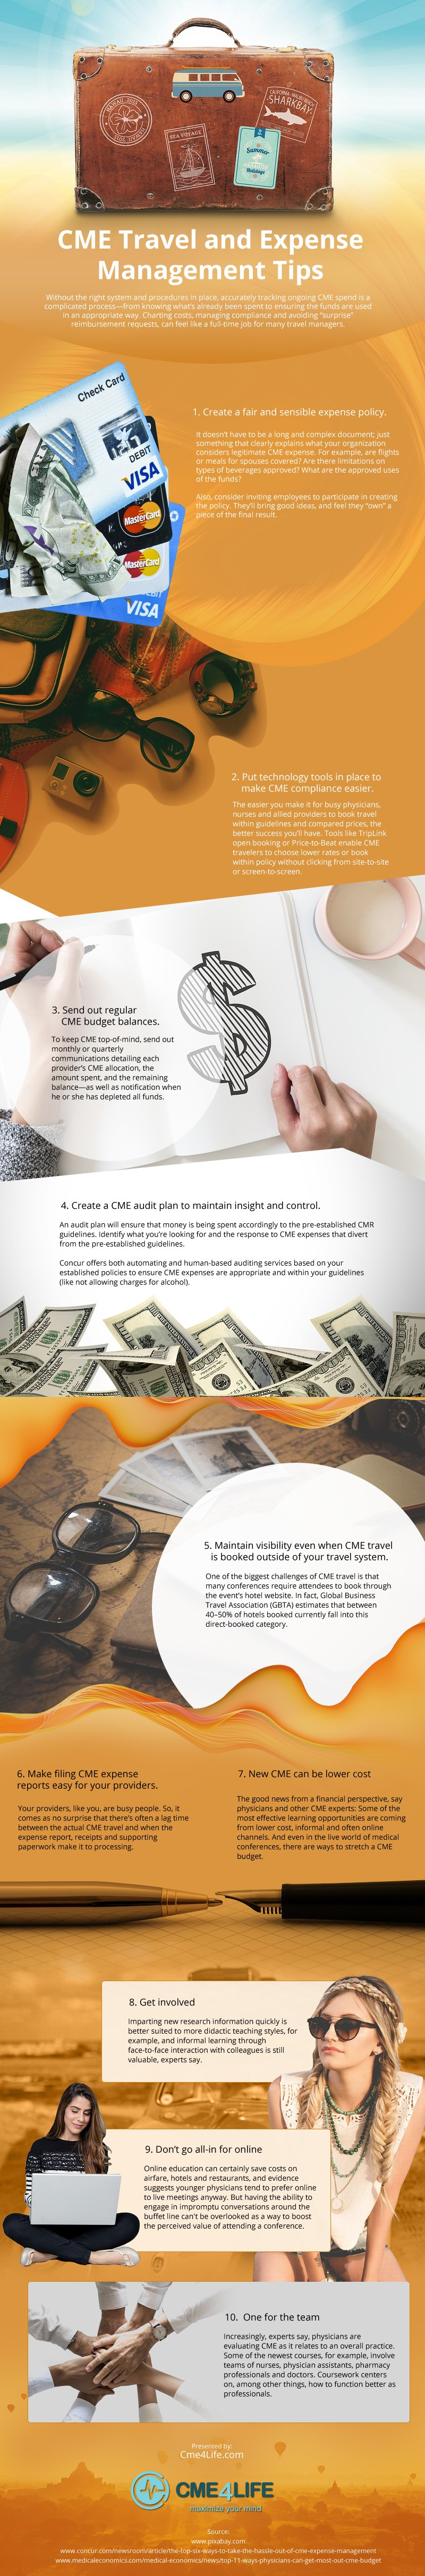 CME-Travel-and-Expense-Management-Tips Infographic